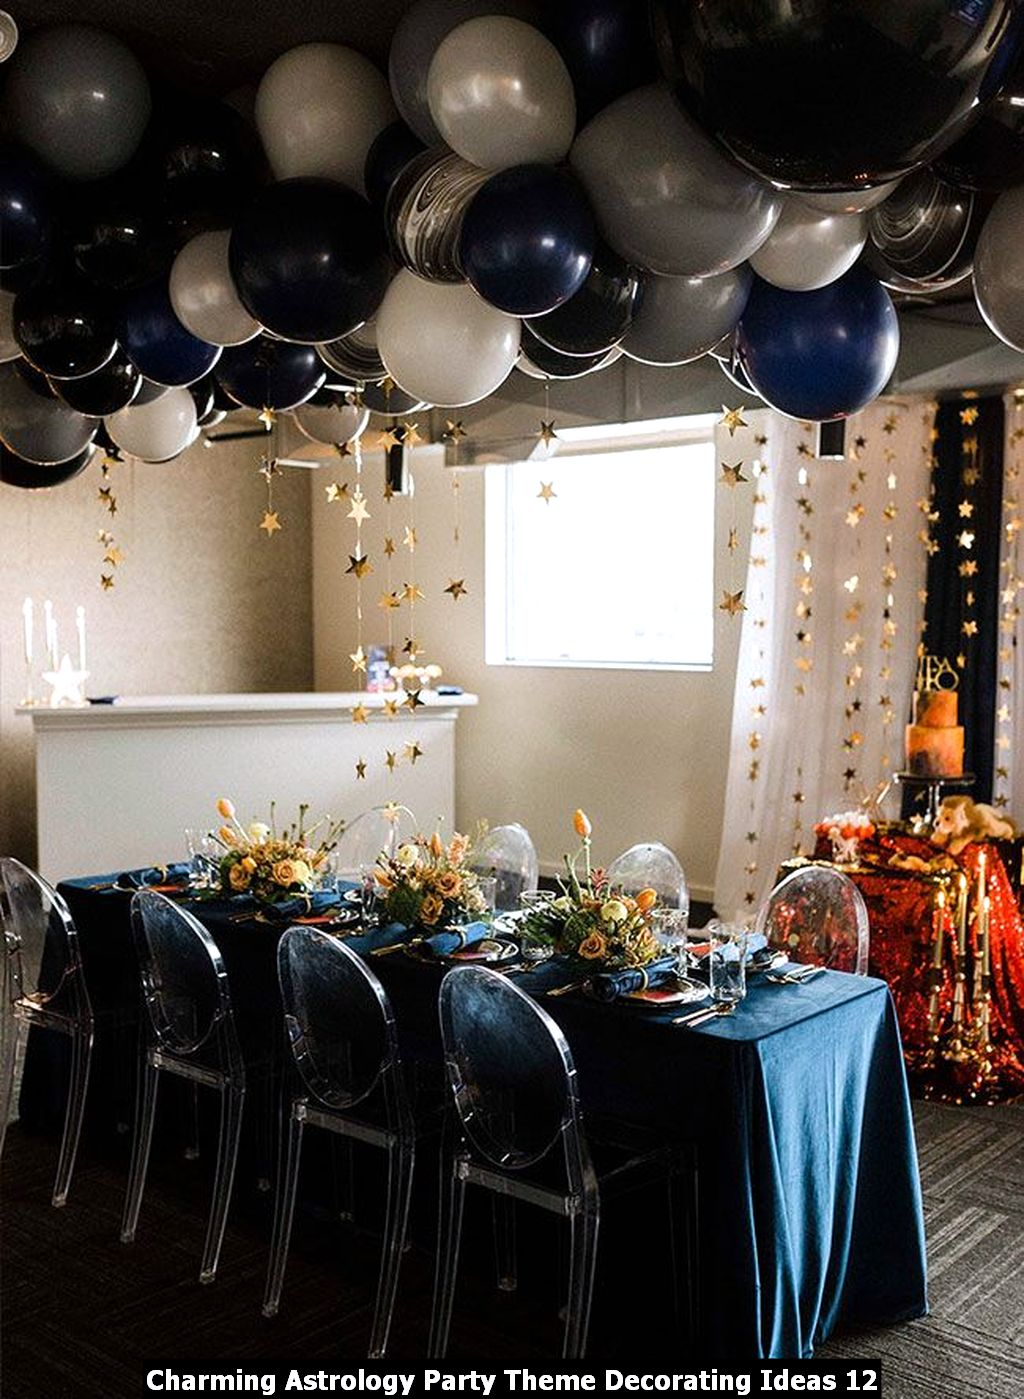 Charming Astrology Party Theme Decorating Ideas 12